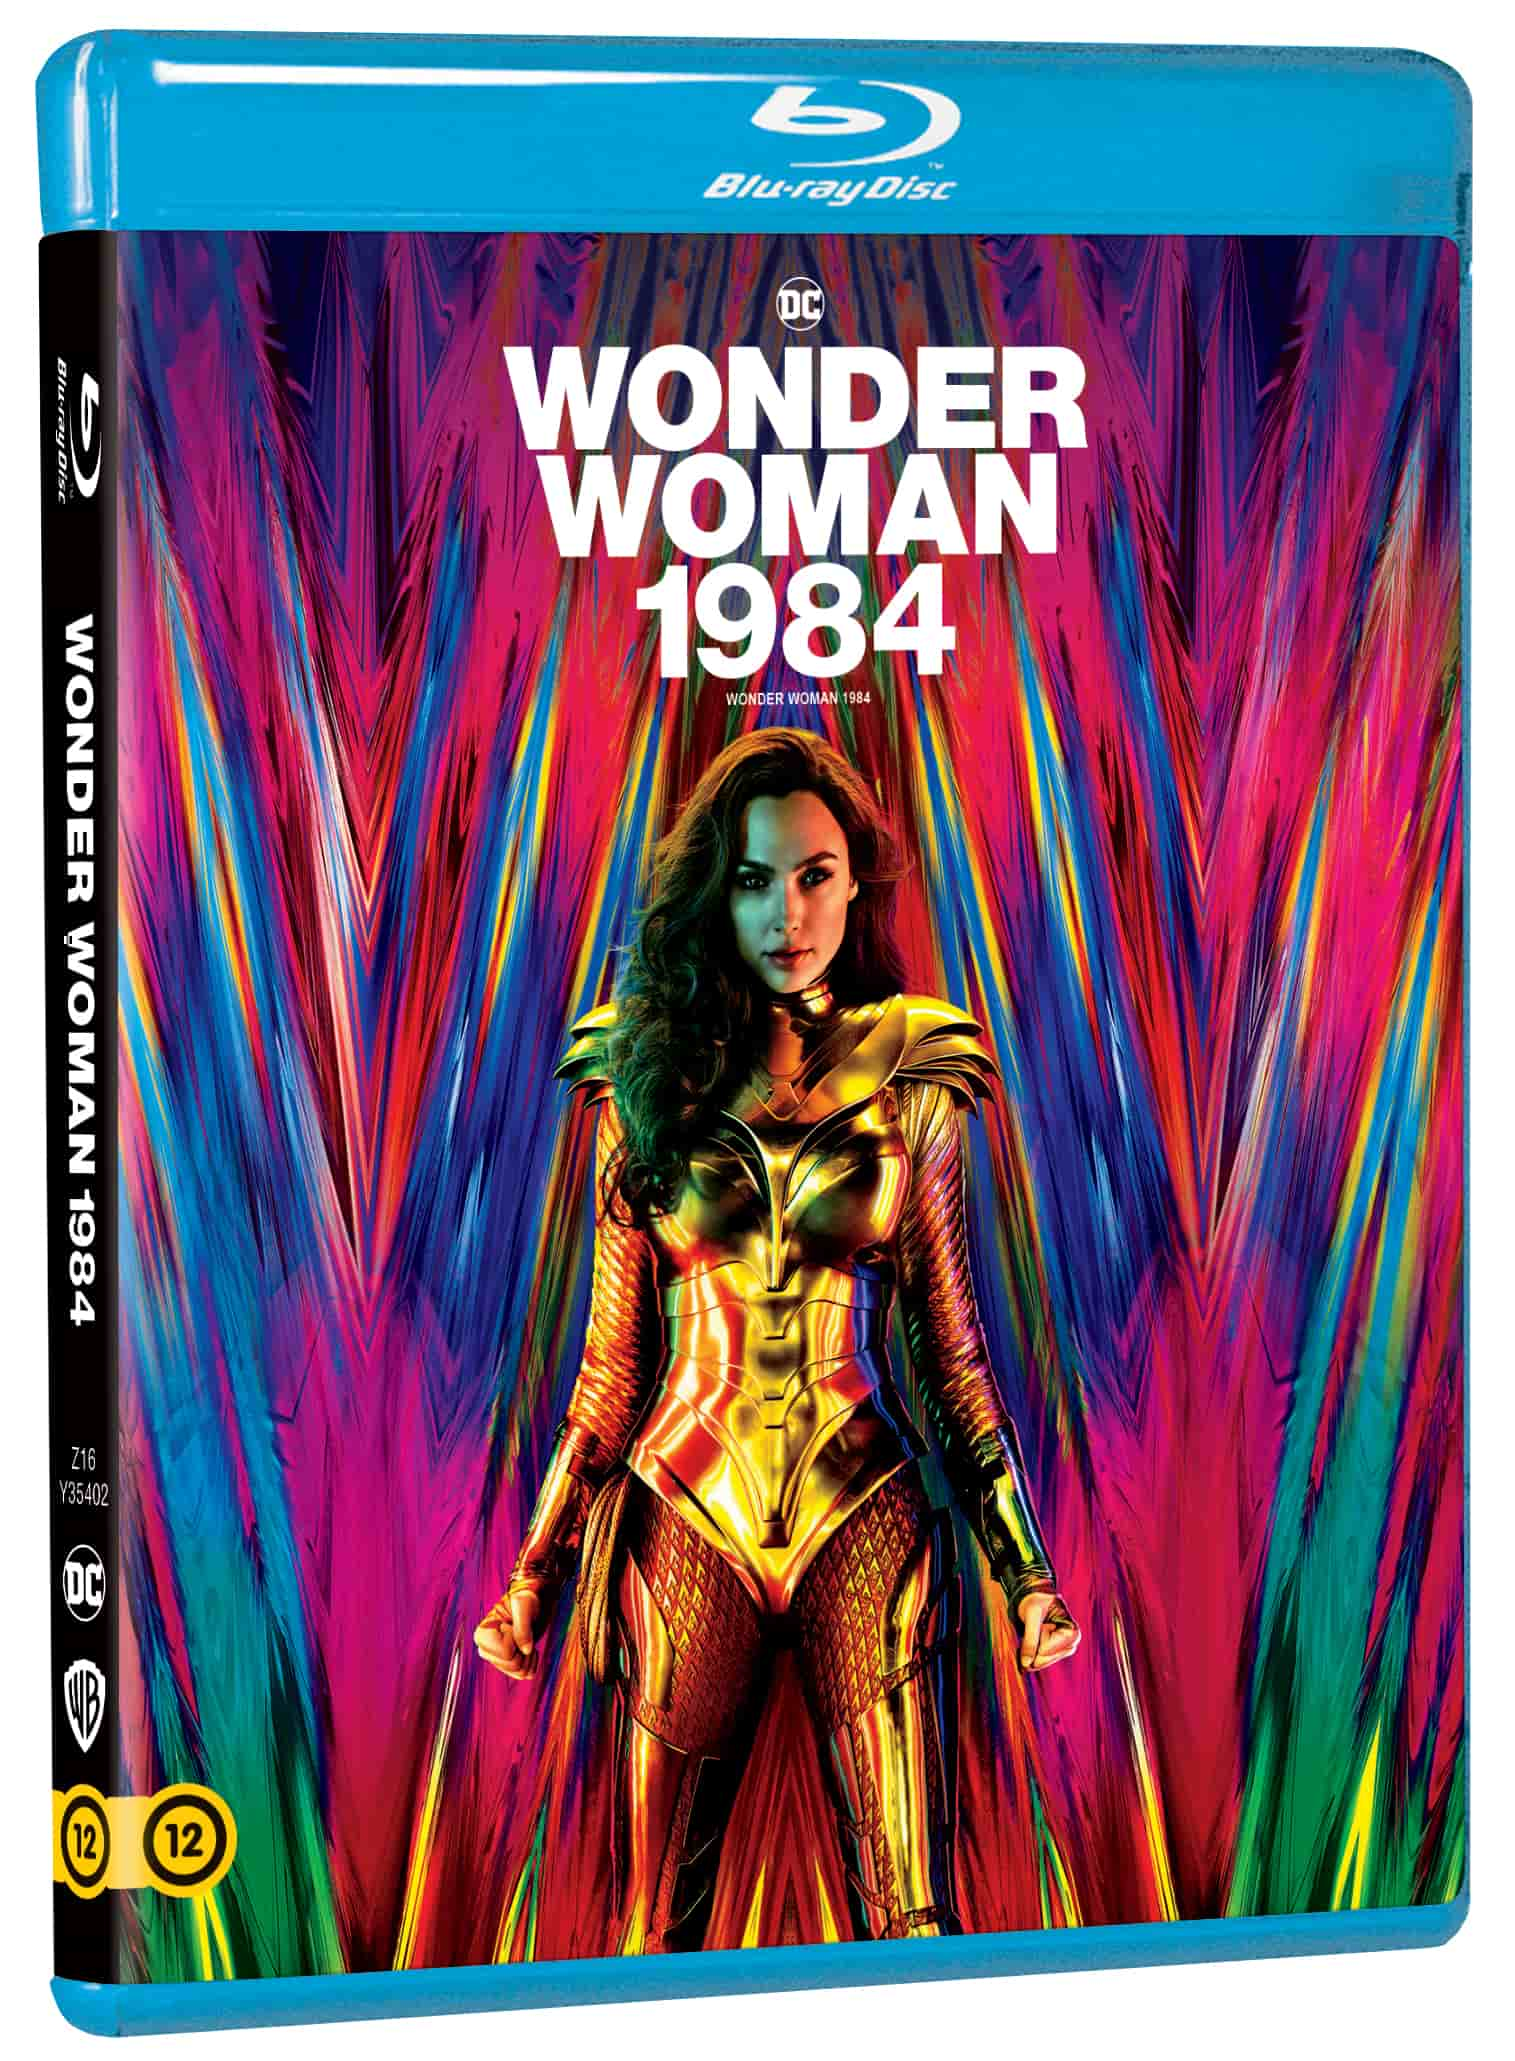 Patty Jenkins - Wonder Woman 1984 - Blu-ray